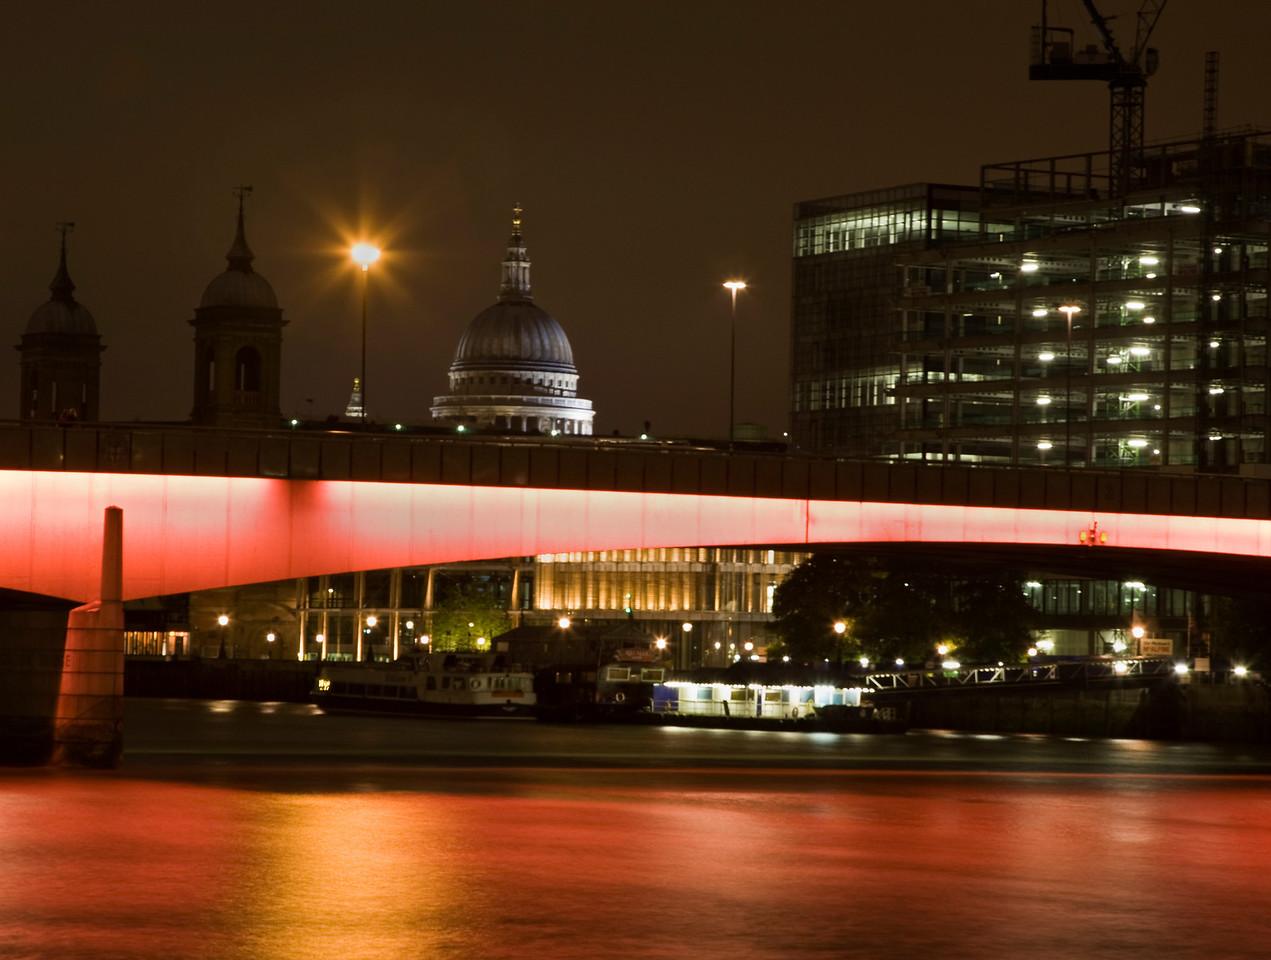 London Bridge at Night with Blackfriars and St Paul's Cathedral in the distance